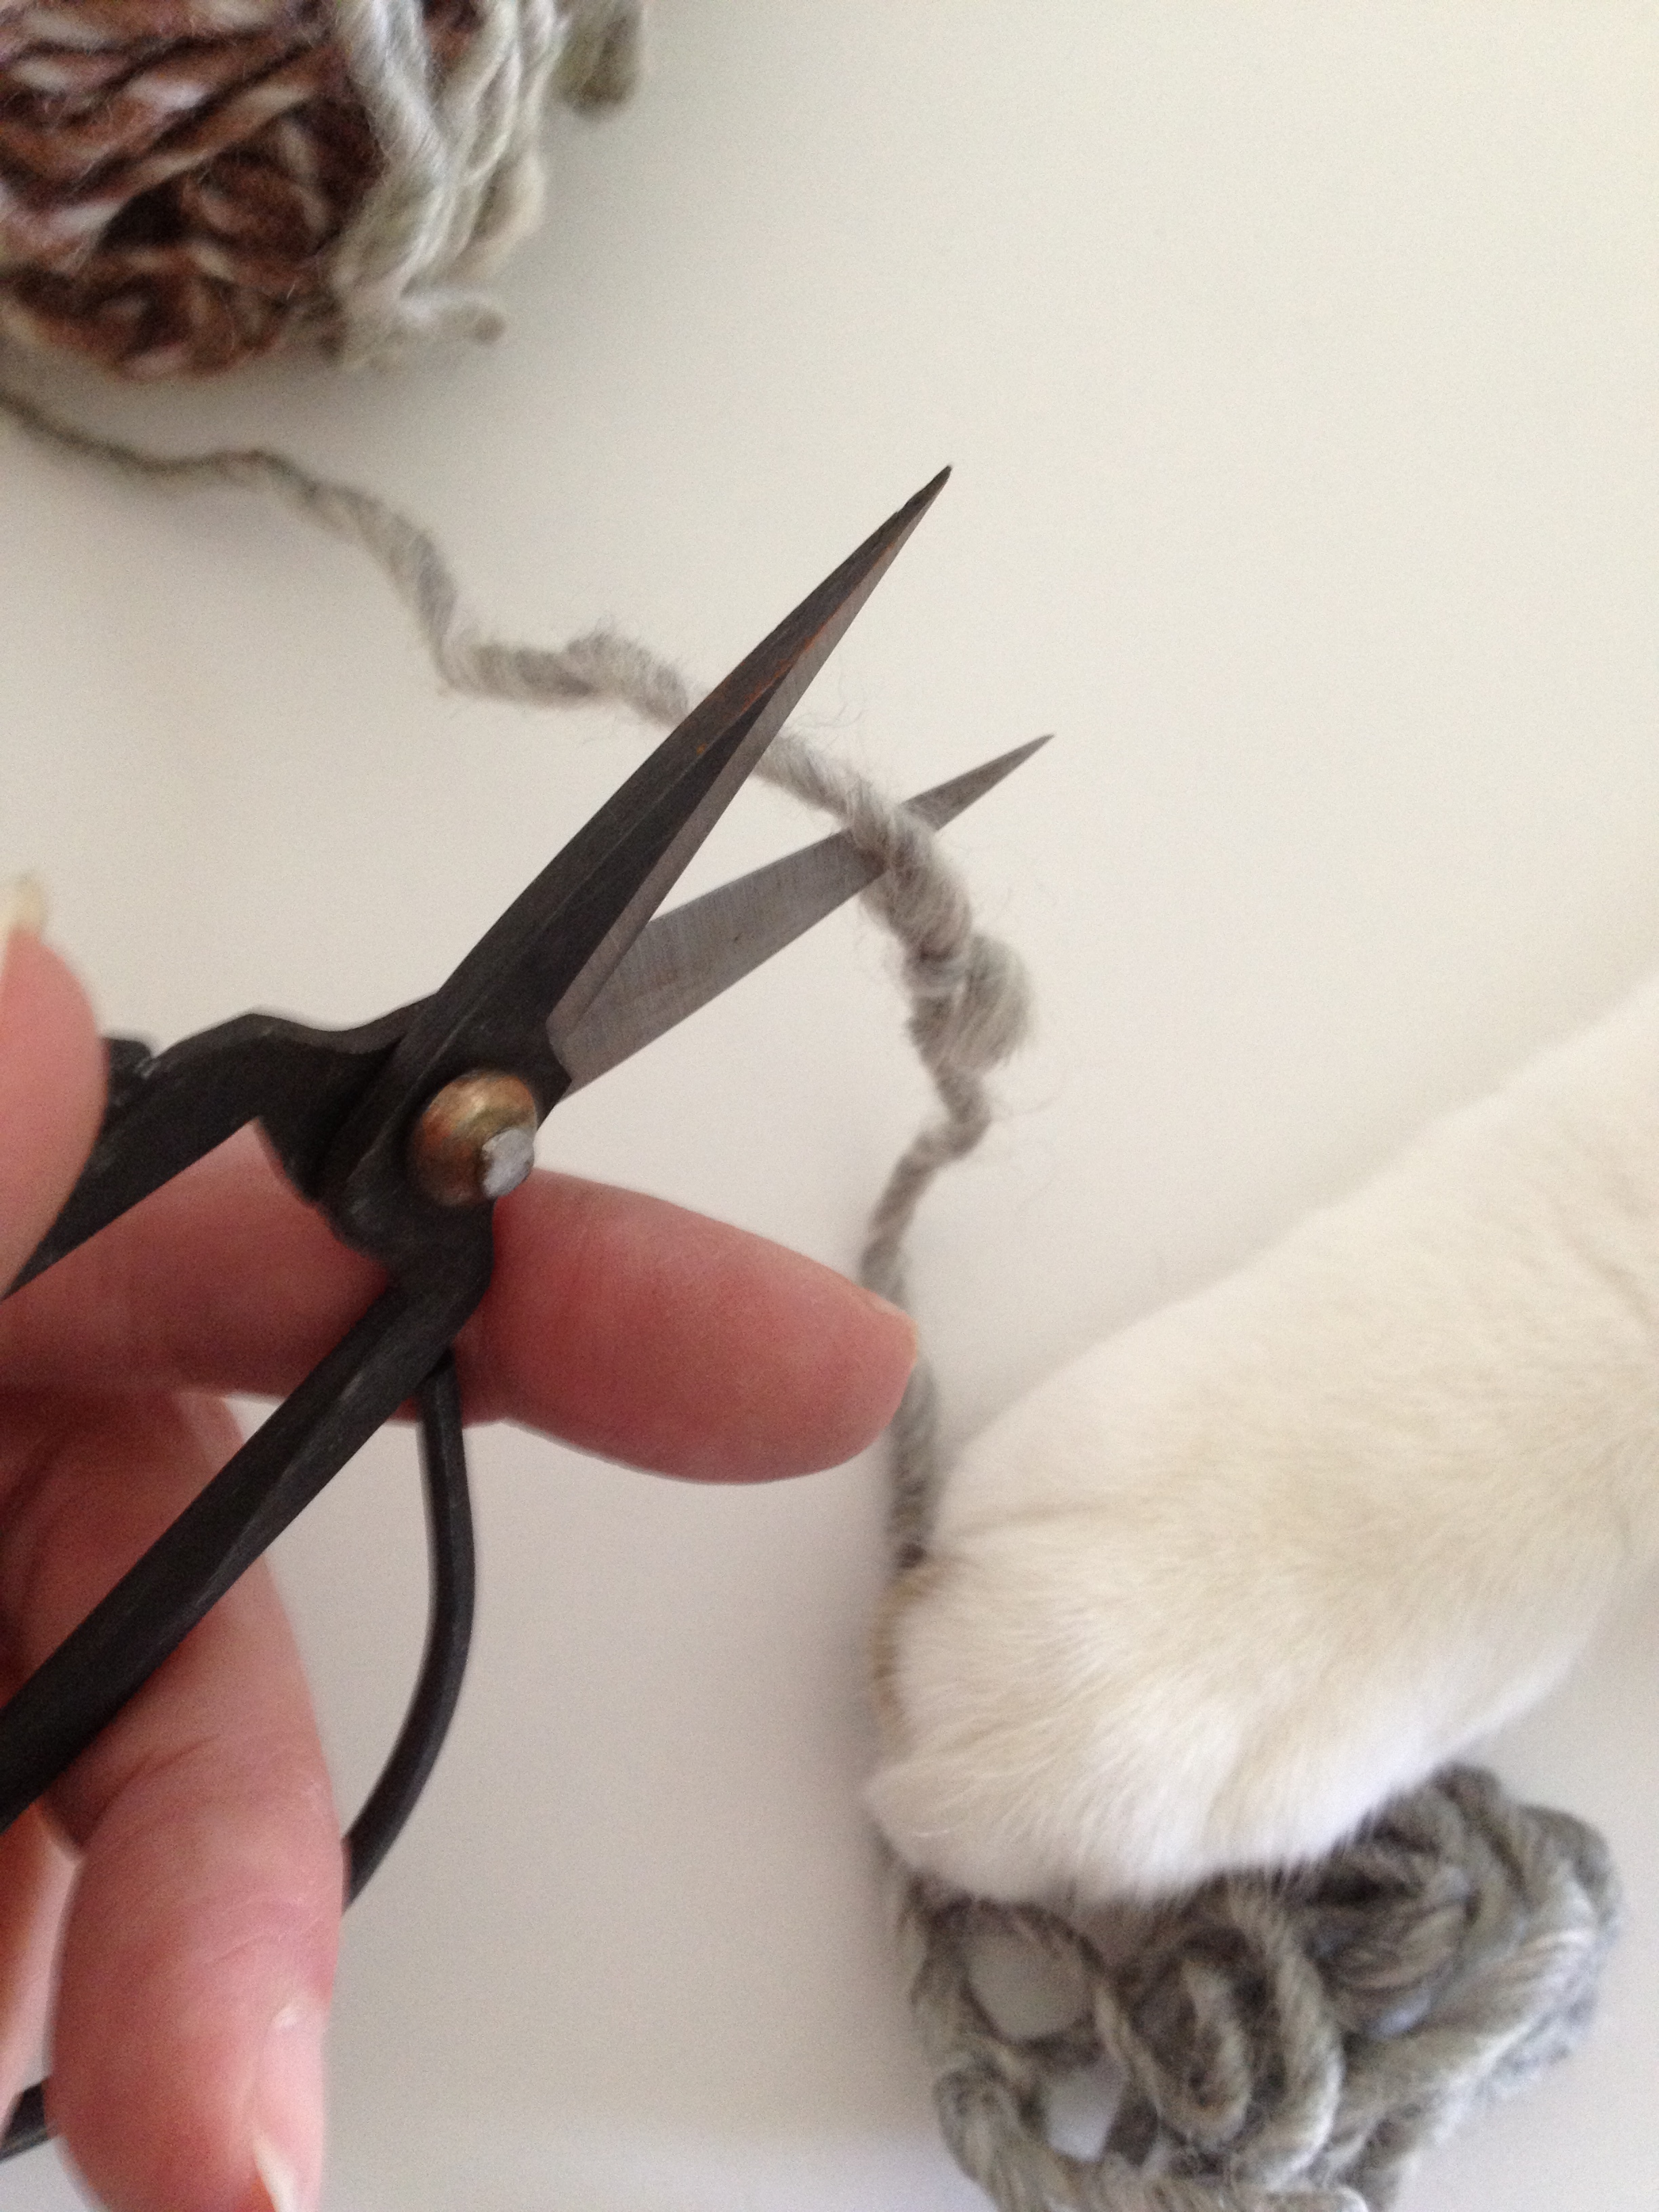 Cutting The Knot With A Little Help From My Friend .